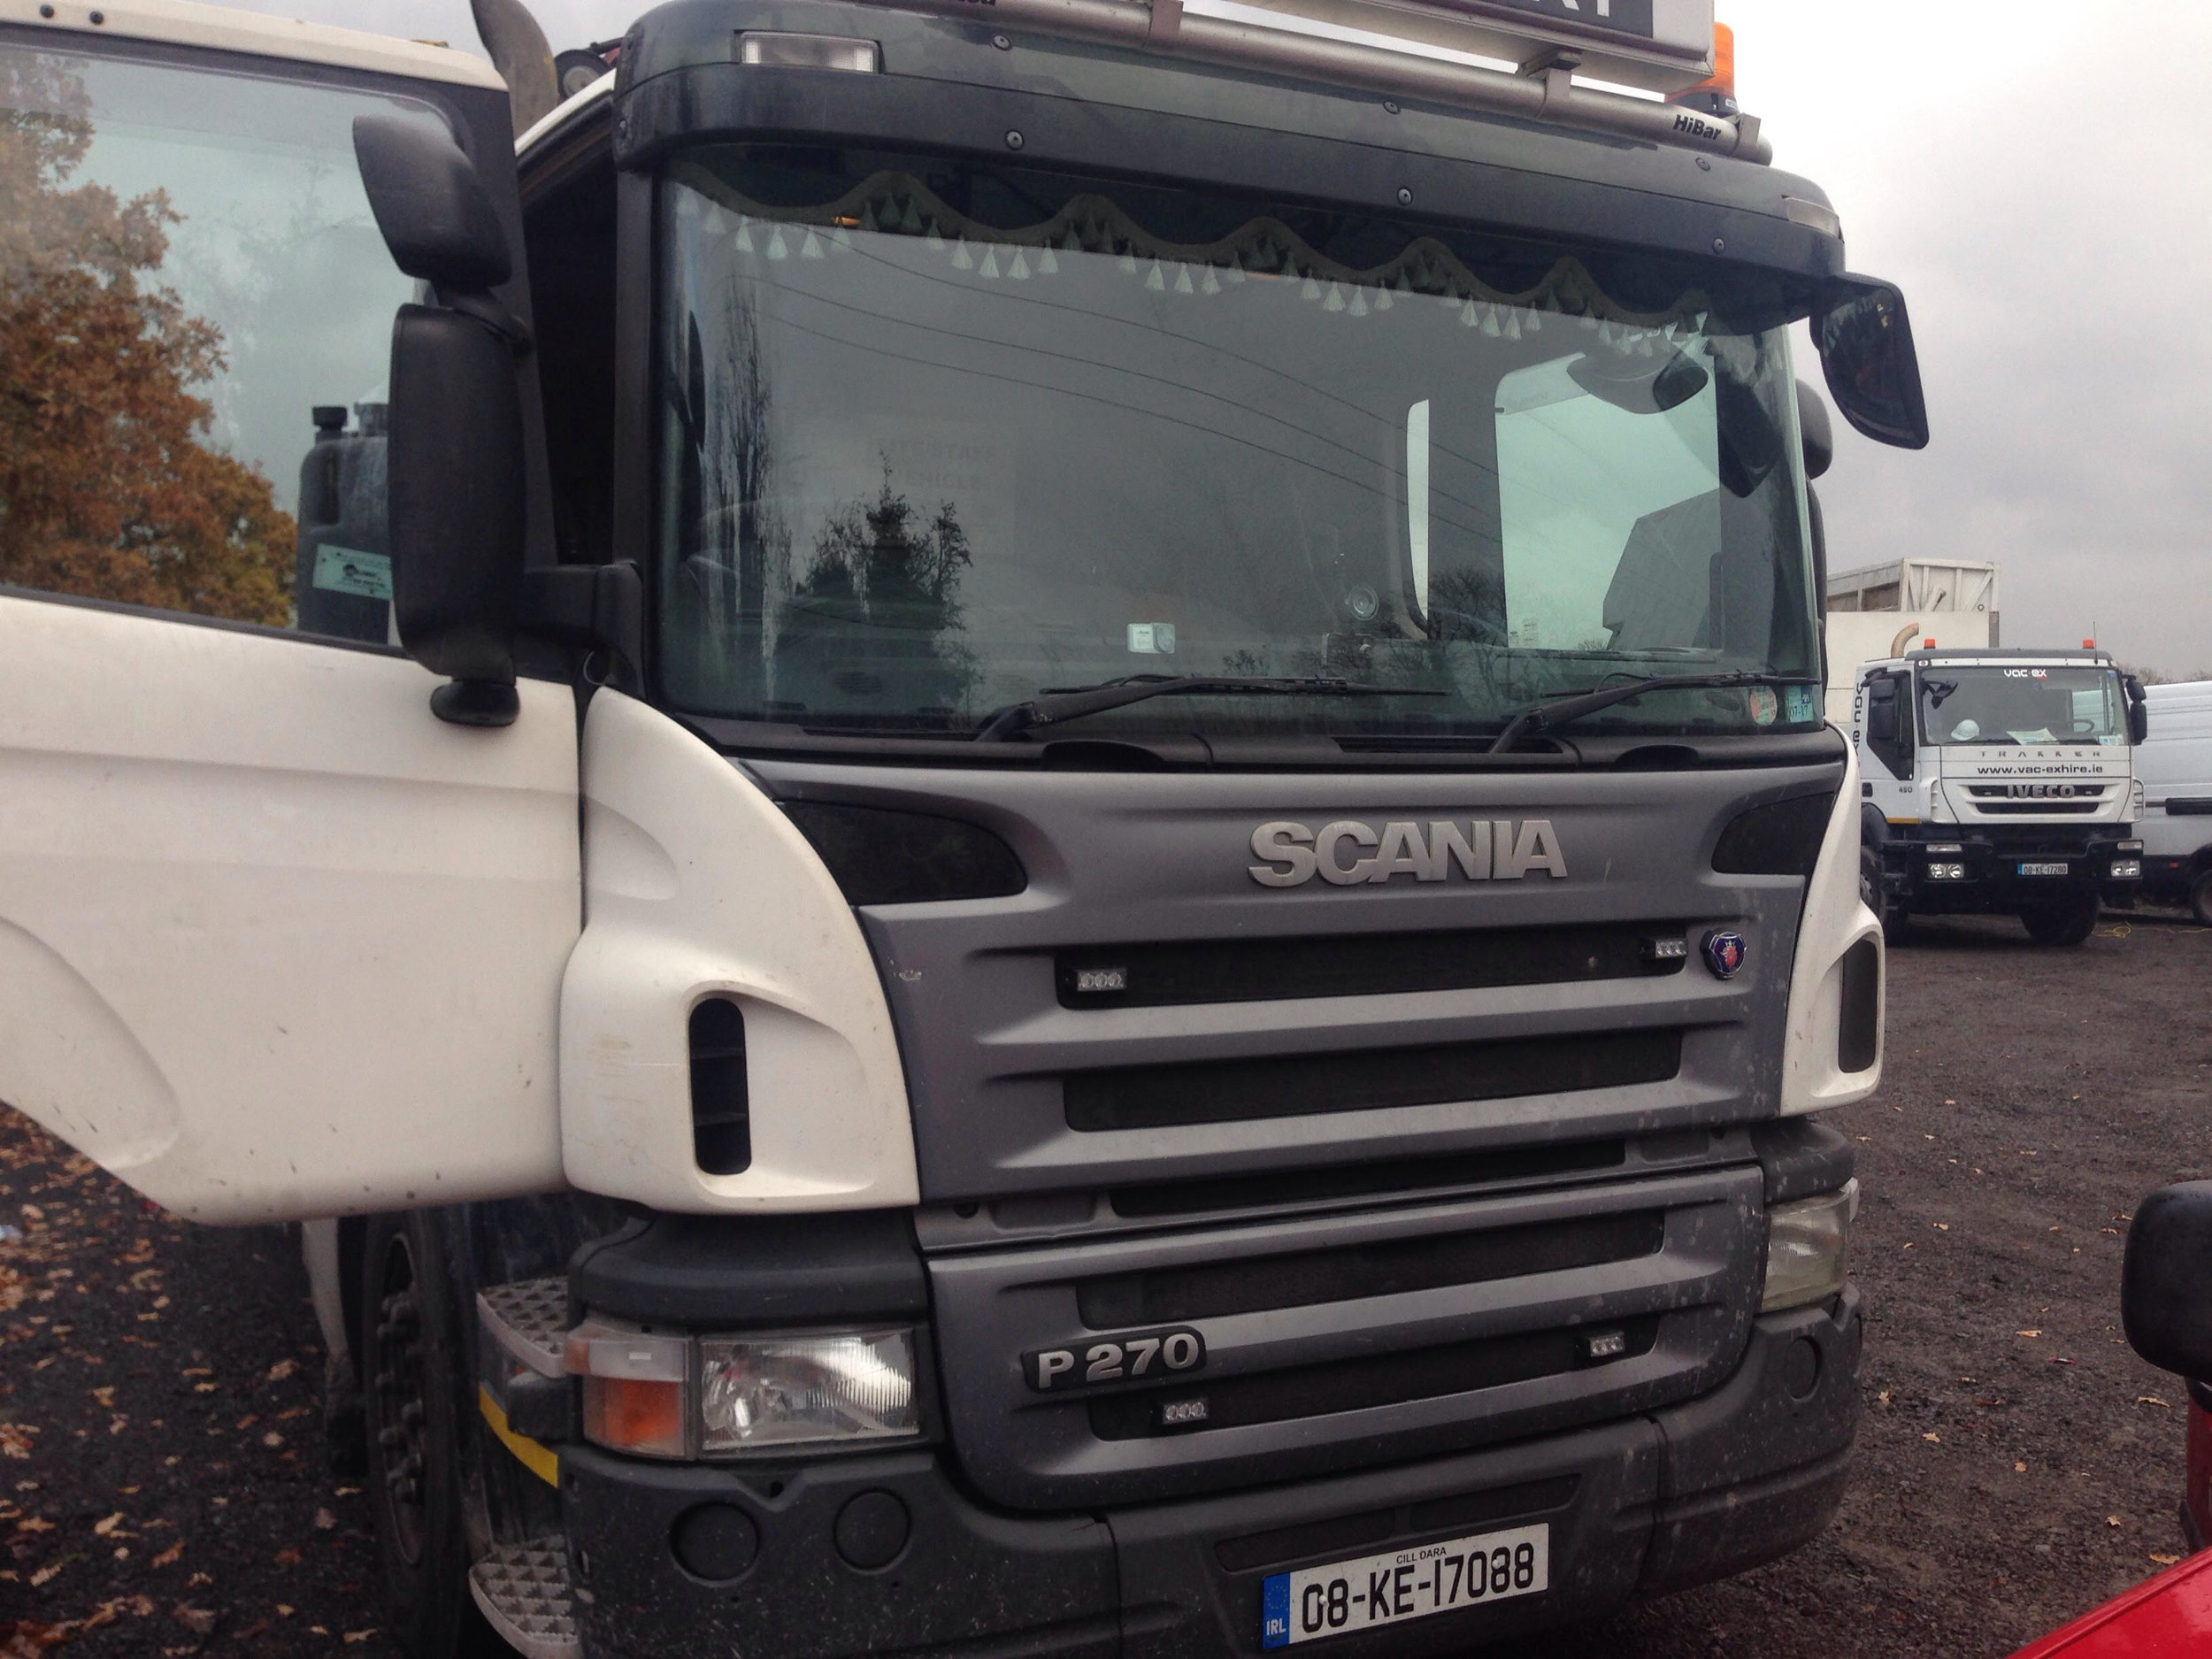 scania p270 ecu remap tuning viezu.jpg